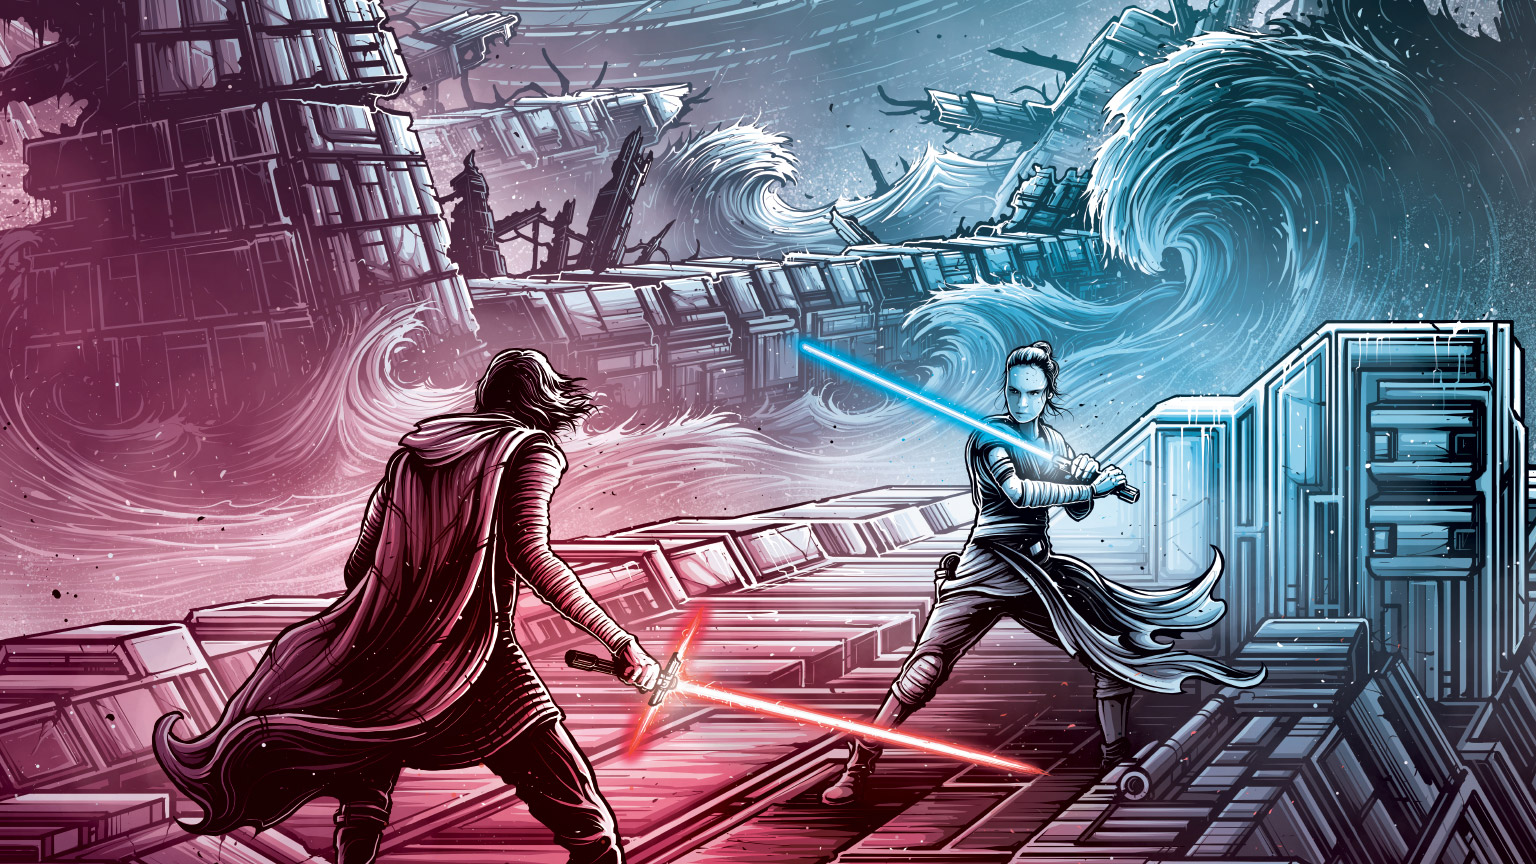 Rey and Kylo Ren in art by Dan Mumford